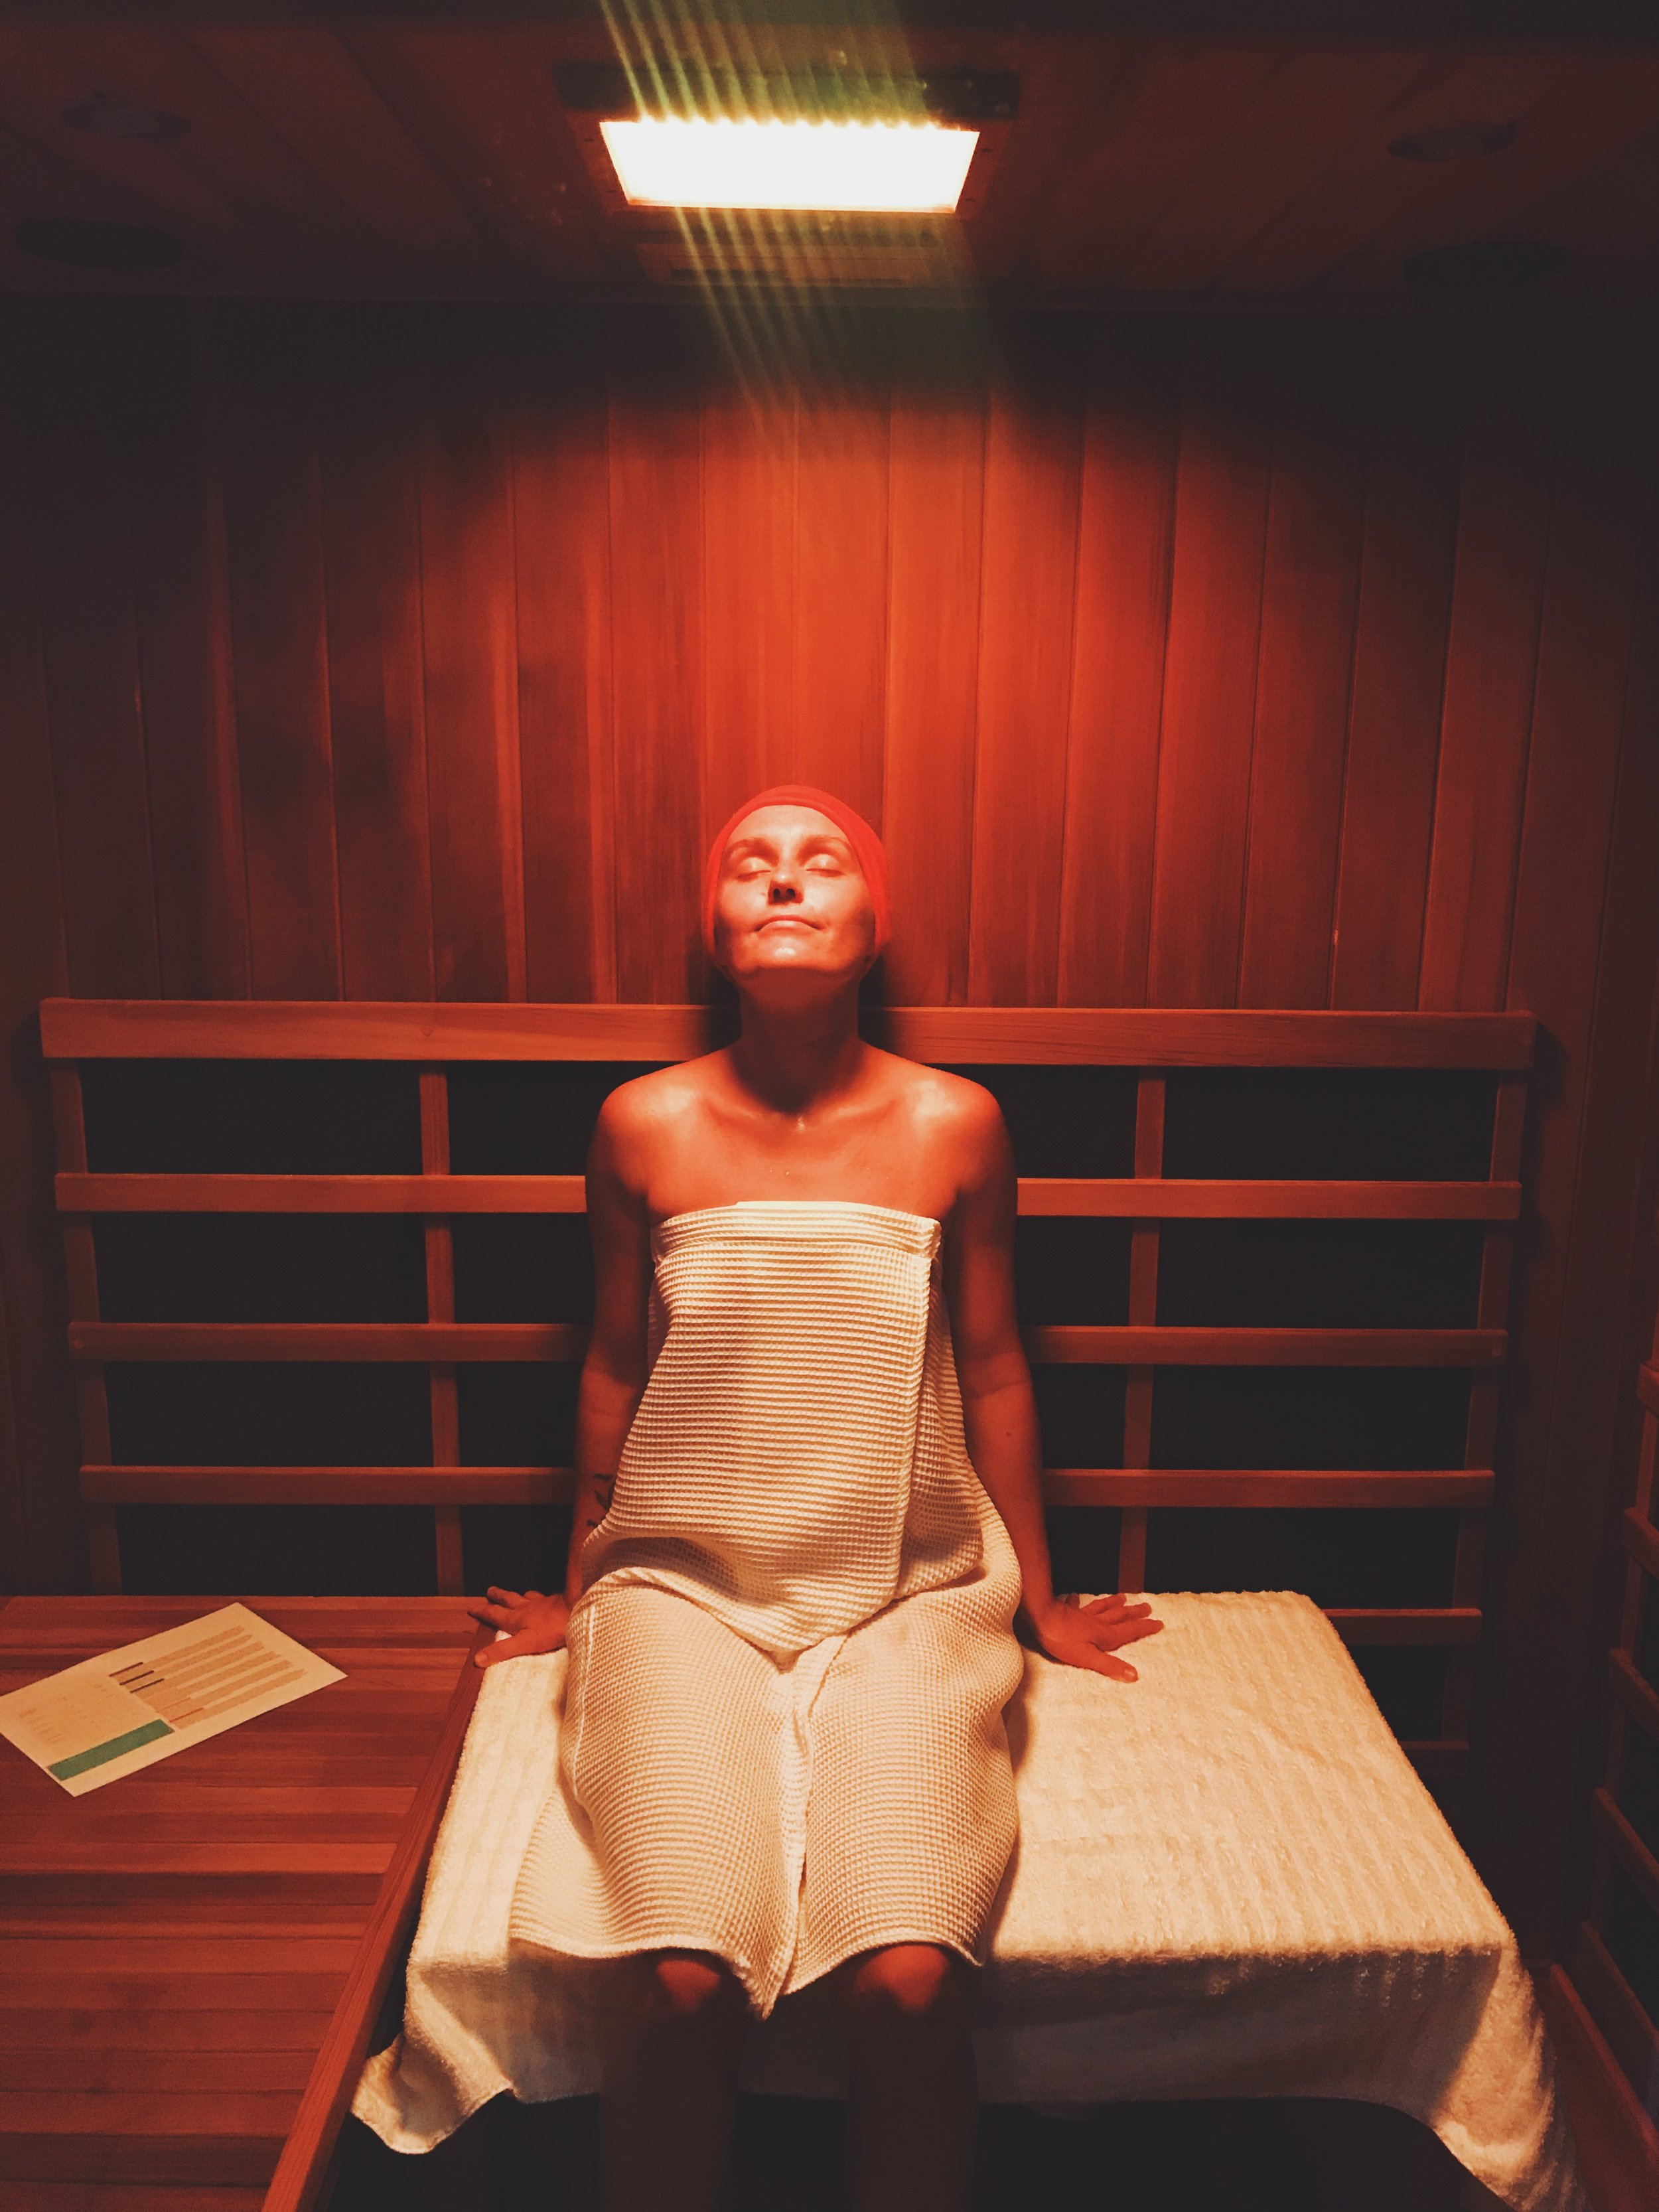 Stress & Fatigue - A few minutes in the gentle warmth of an infrared sauna will help you feel relaxed, rejuvenated, and renewed. Also, it affects the autonomic nervous system putting you in the parasympathetic (rest and digest) state allowing your body to heal.